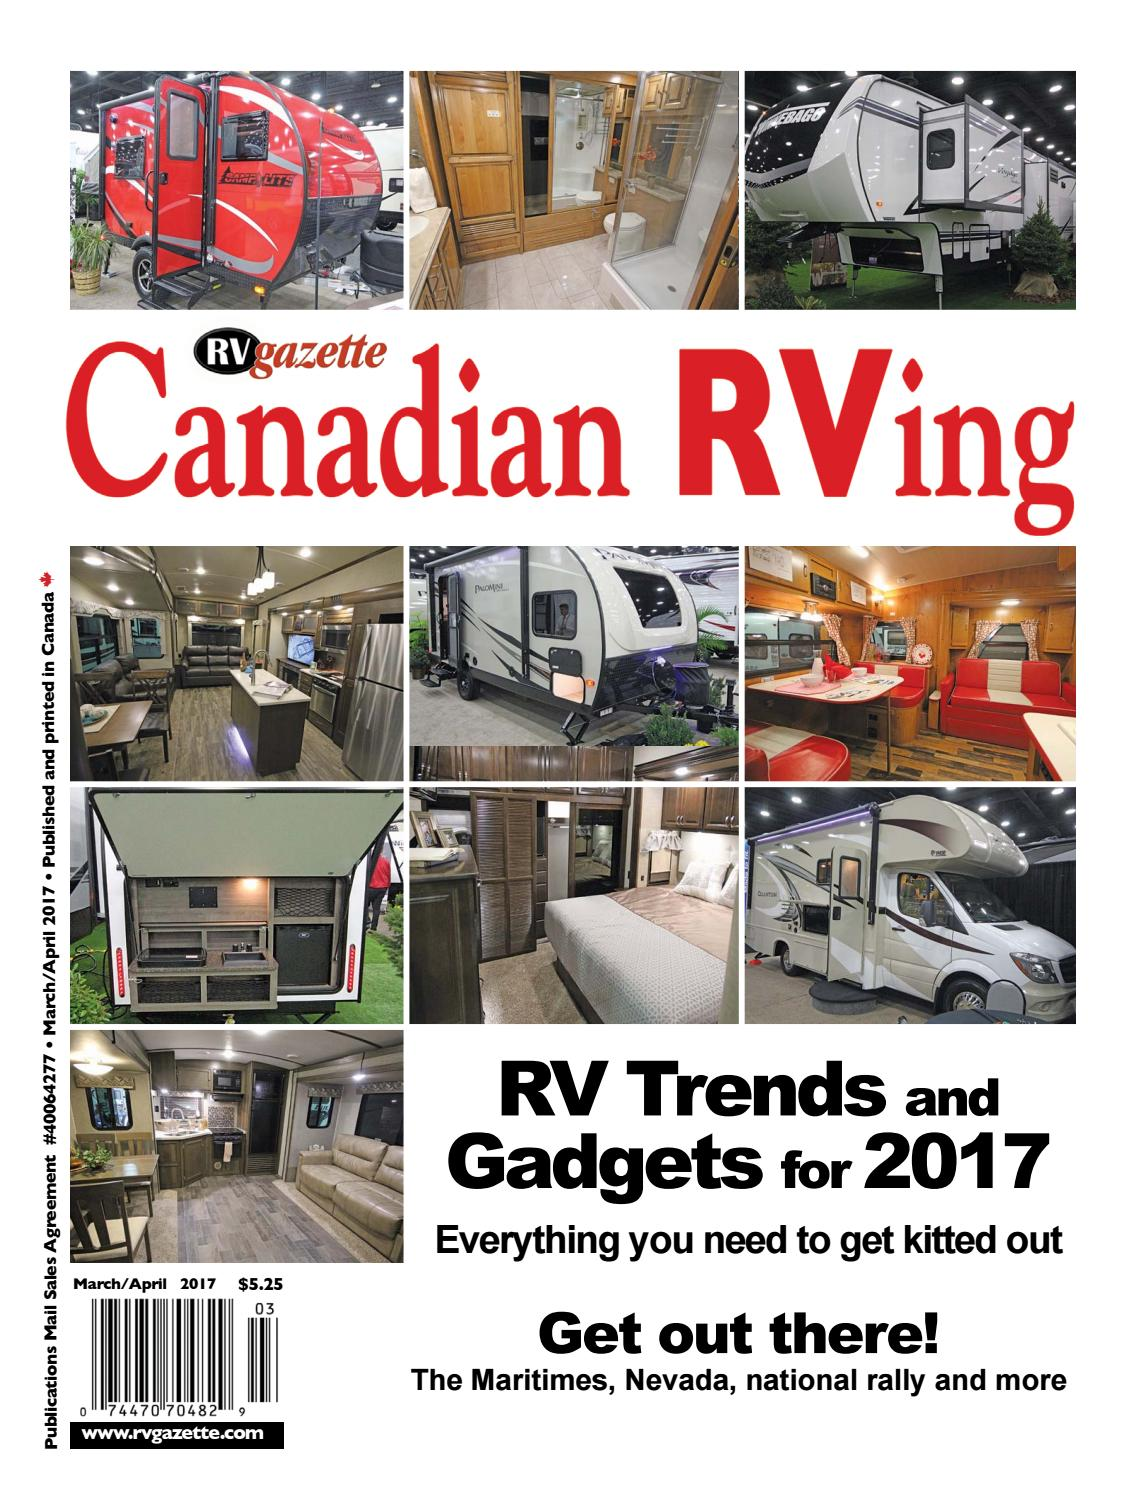 Canadian RVing Mar/Apr 2017 by Dovetail Communications - issuu on